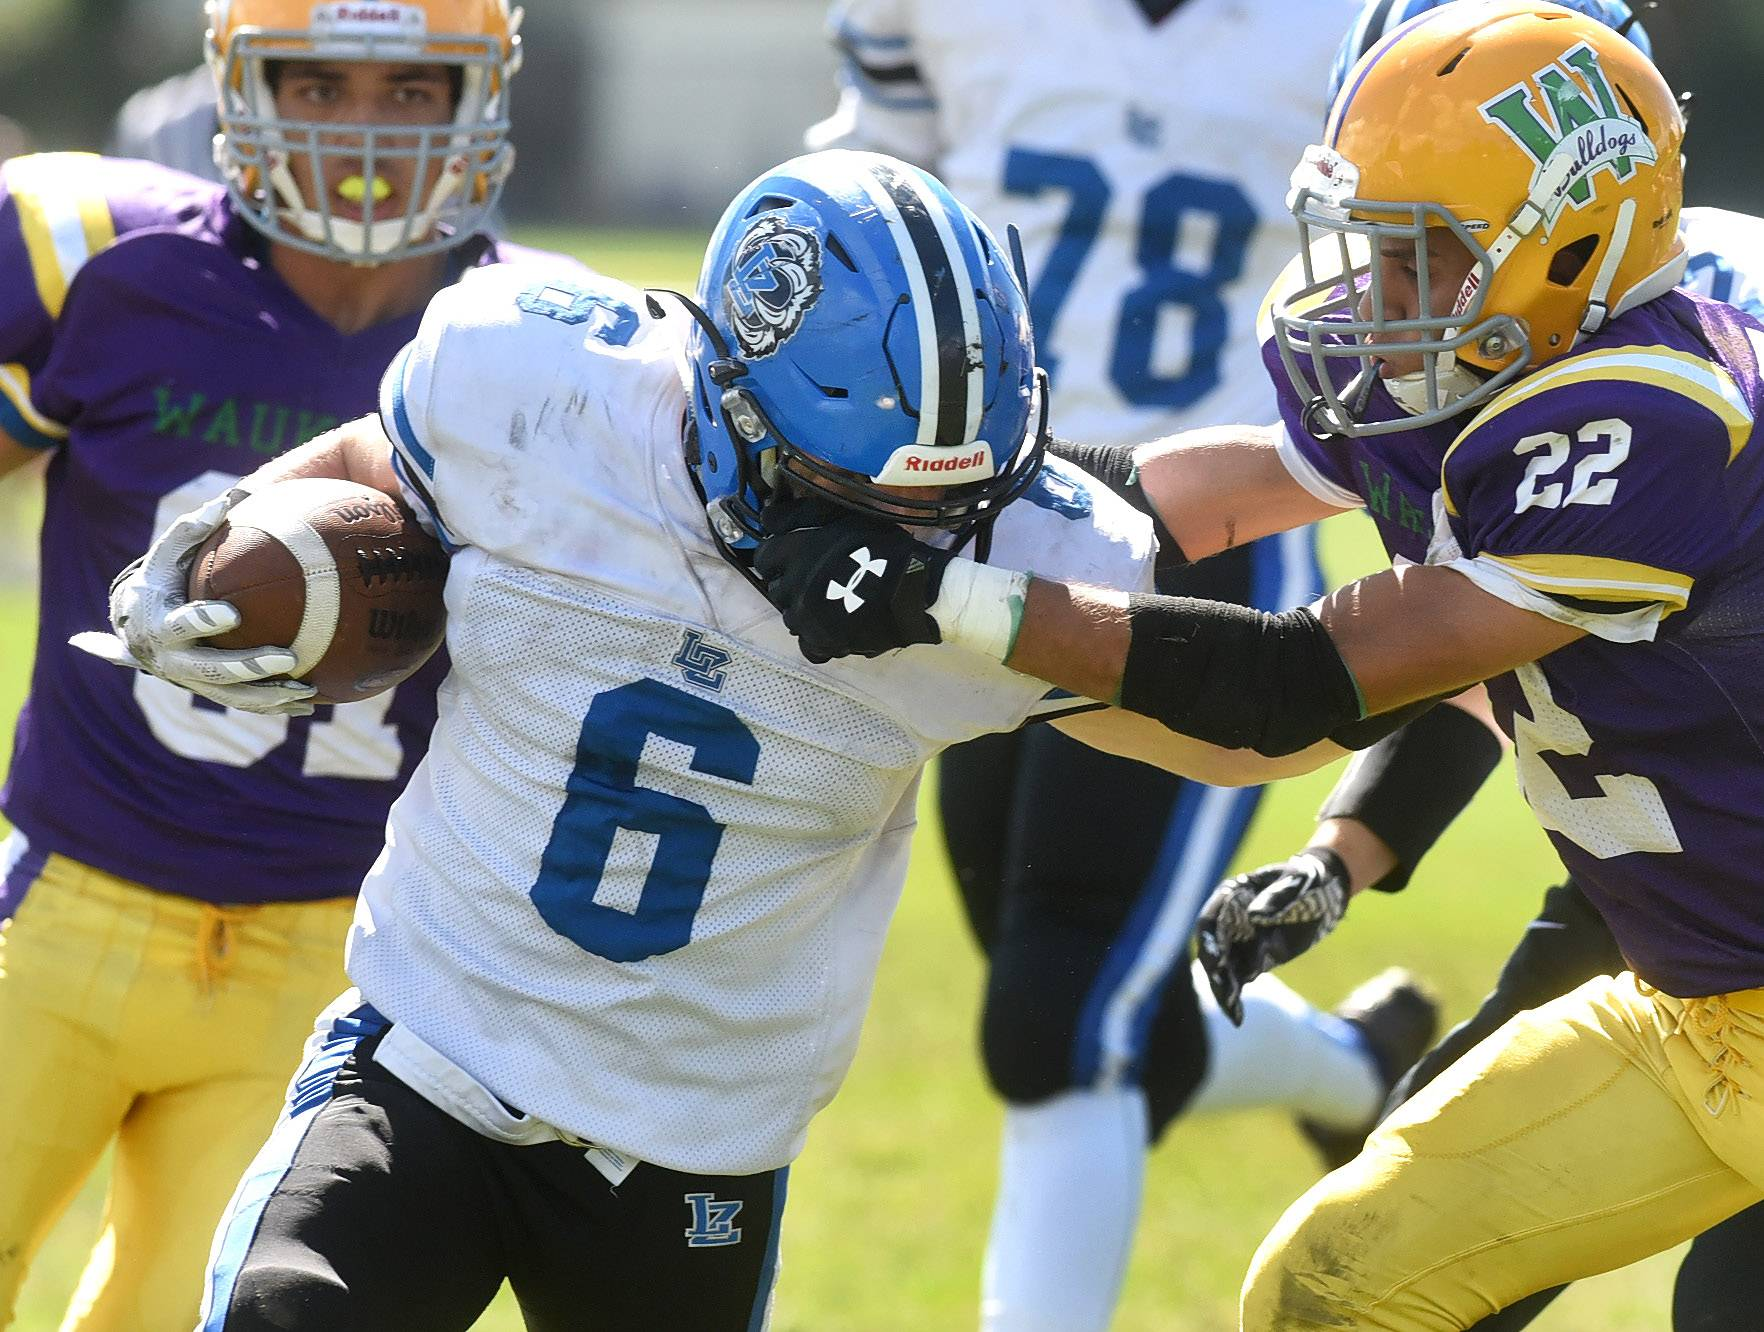 Lake Zurich running back Joey Stutzman gets facemasked by Waukegan's Anas Abushamt during second-quarter action at Waukegan on Saturday.